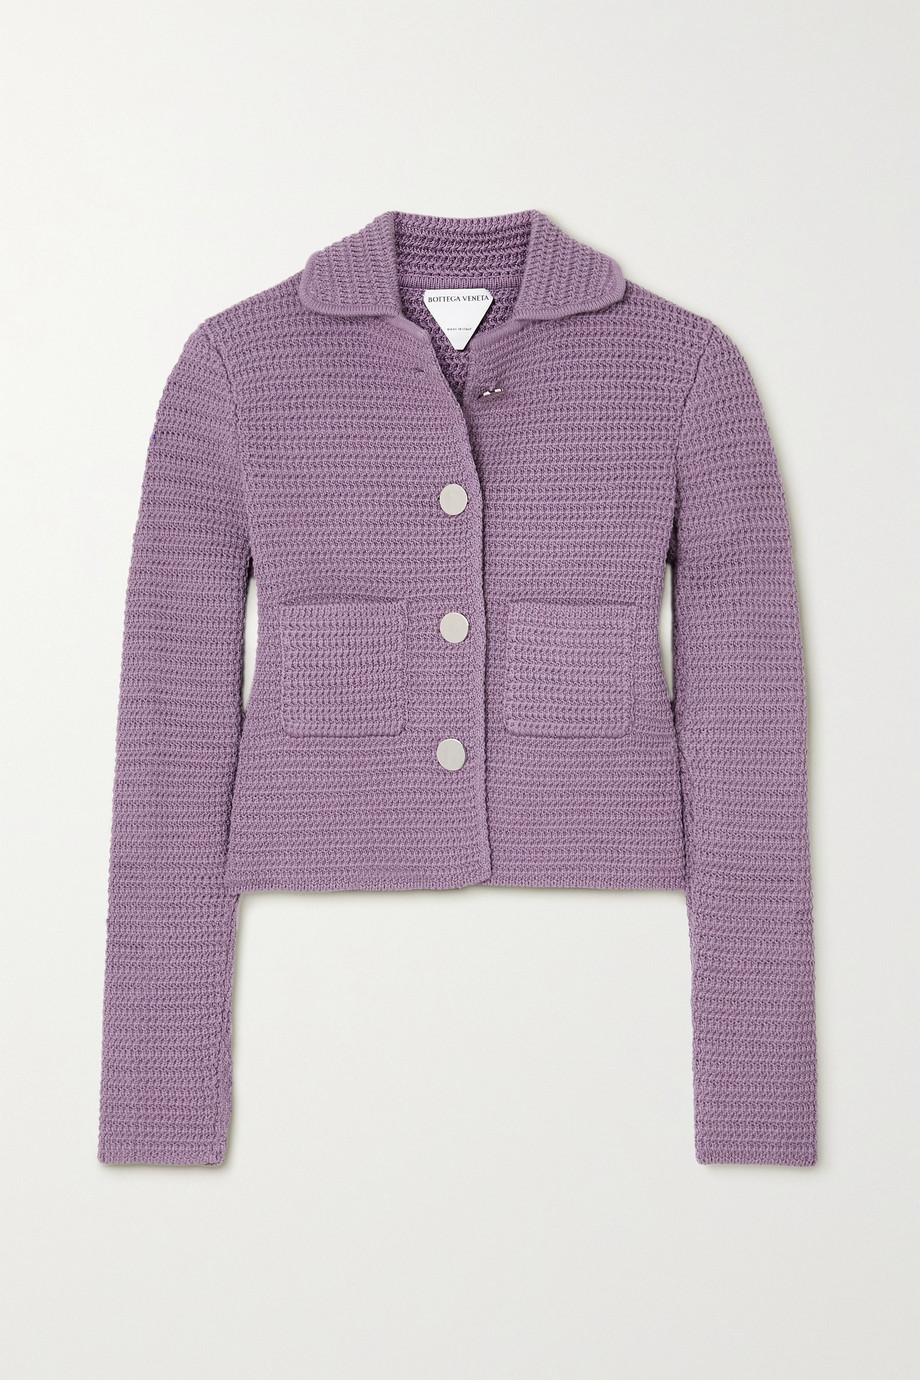 BOTTEGA VENETA Crochet-knit cotton-blend jacket